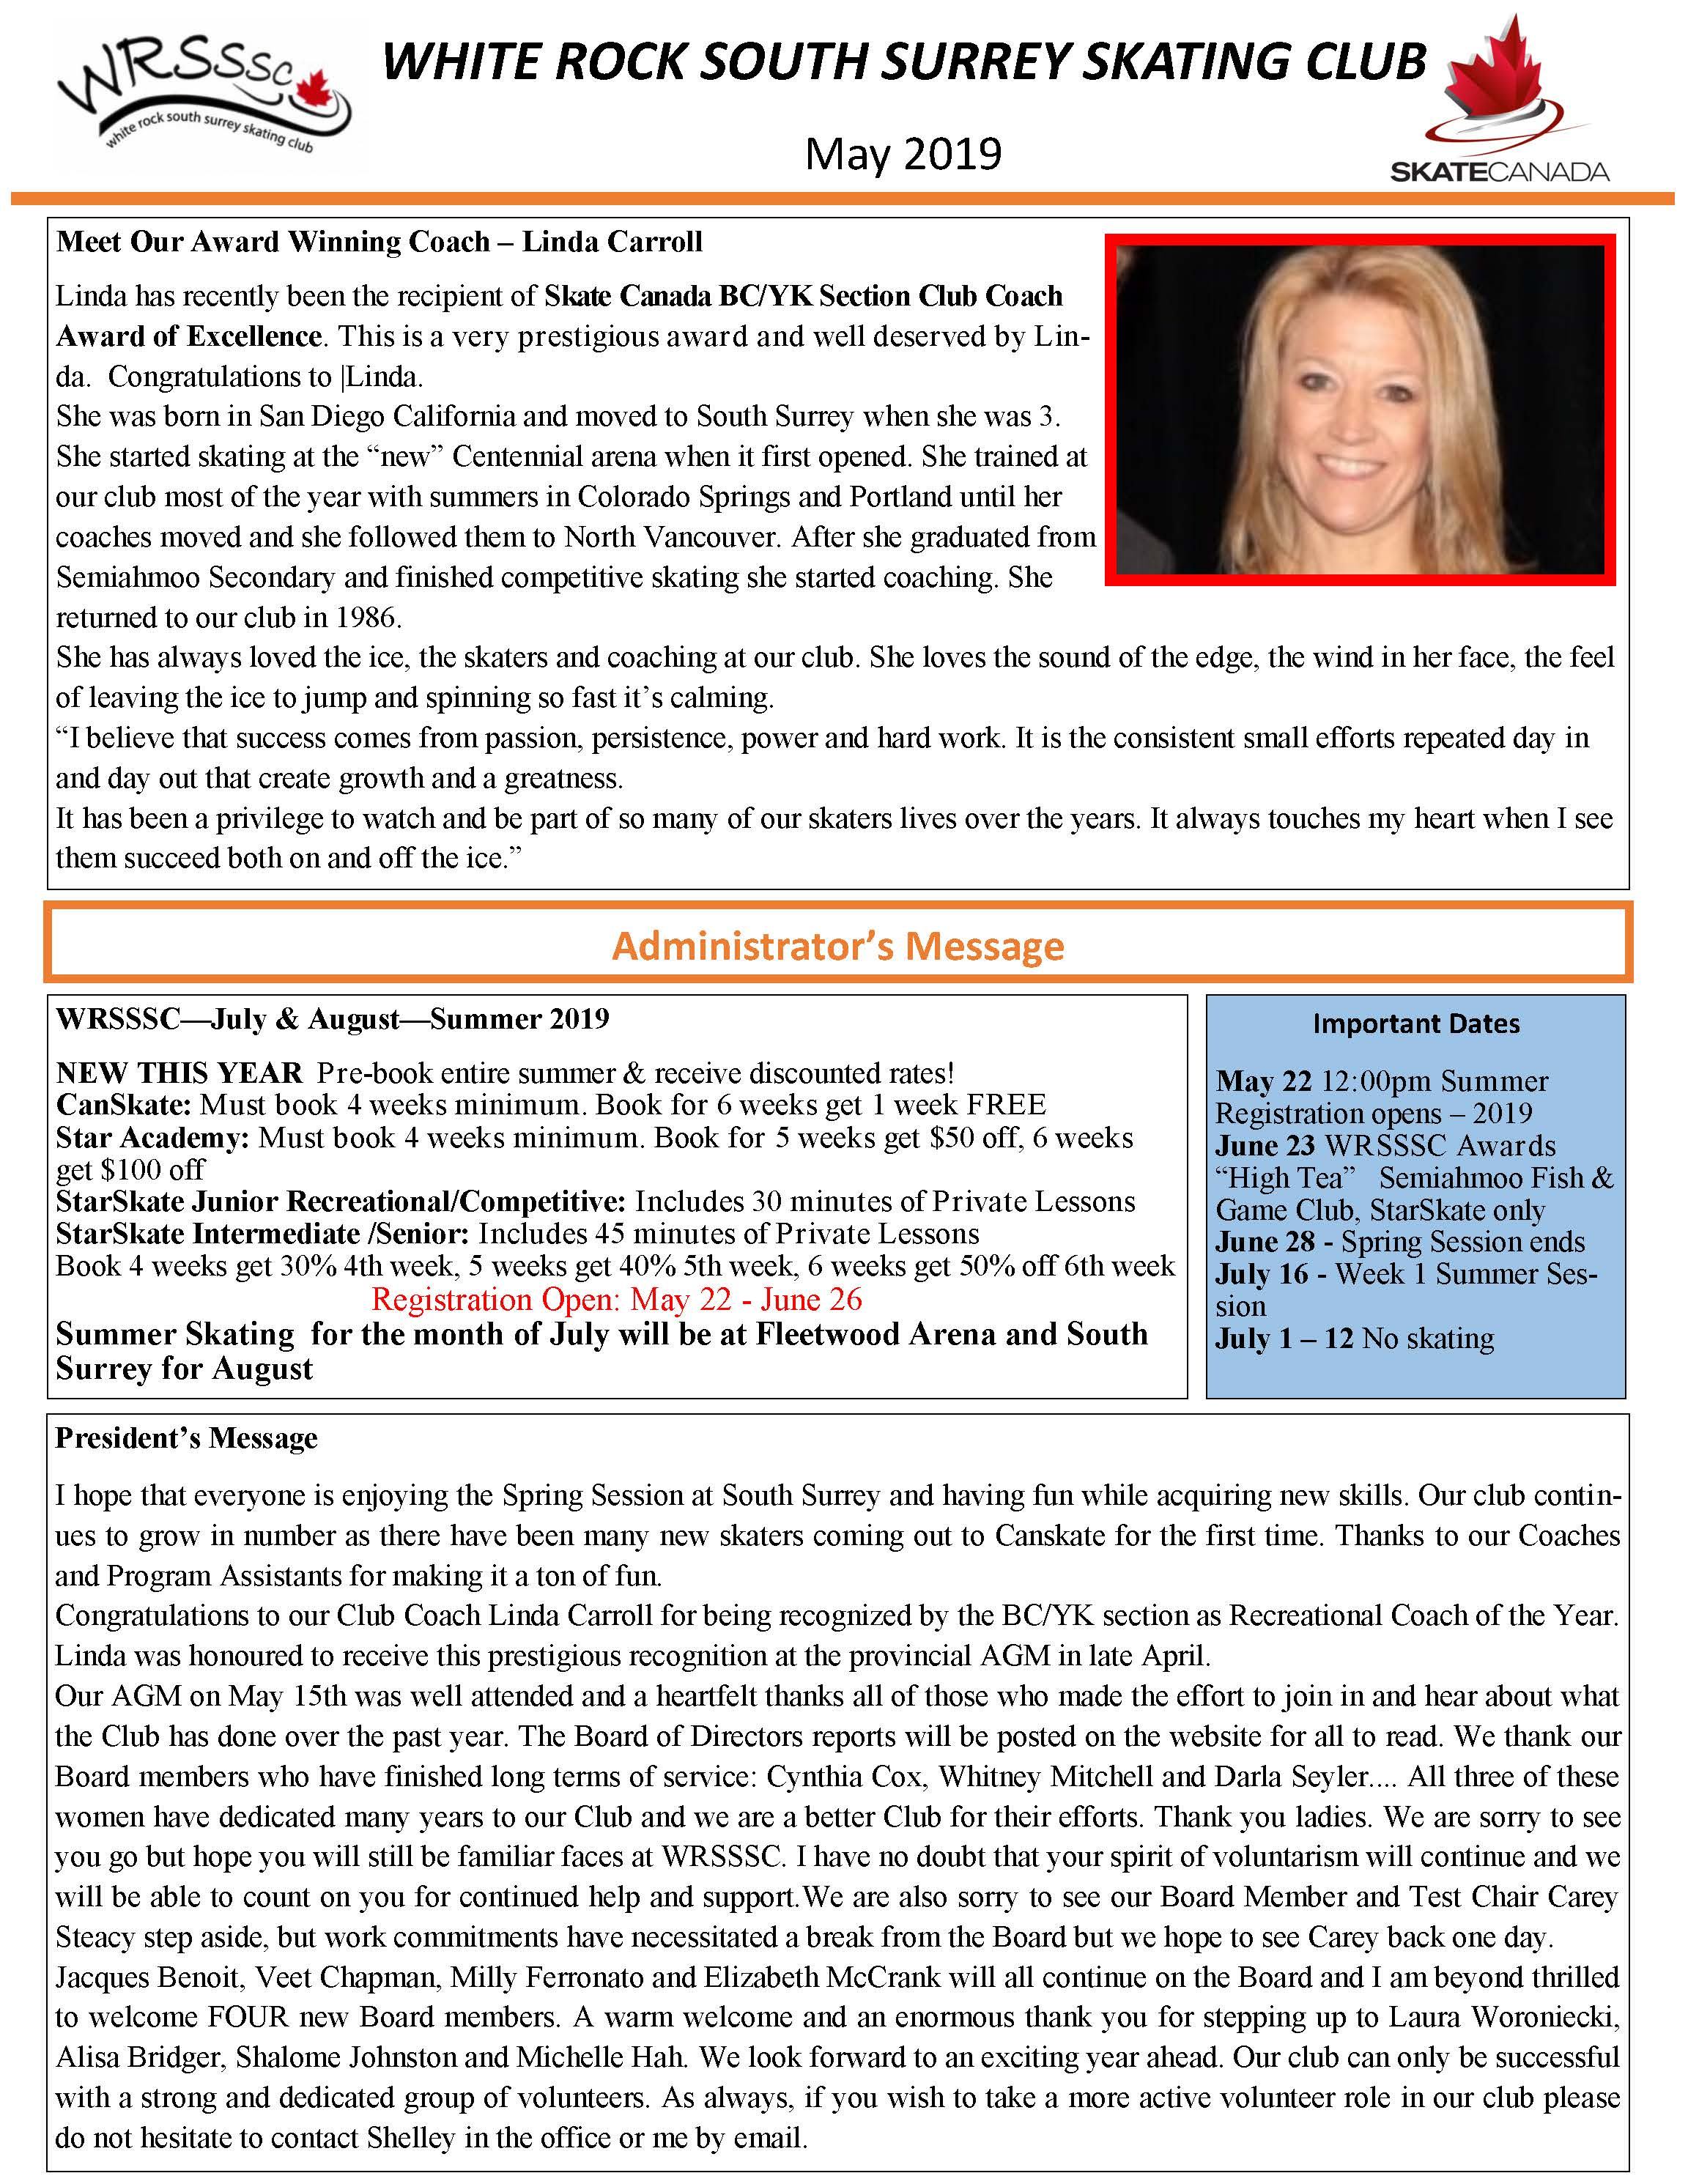 WRSSSC Newsletter May 2019 1.jpg